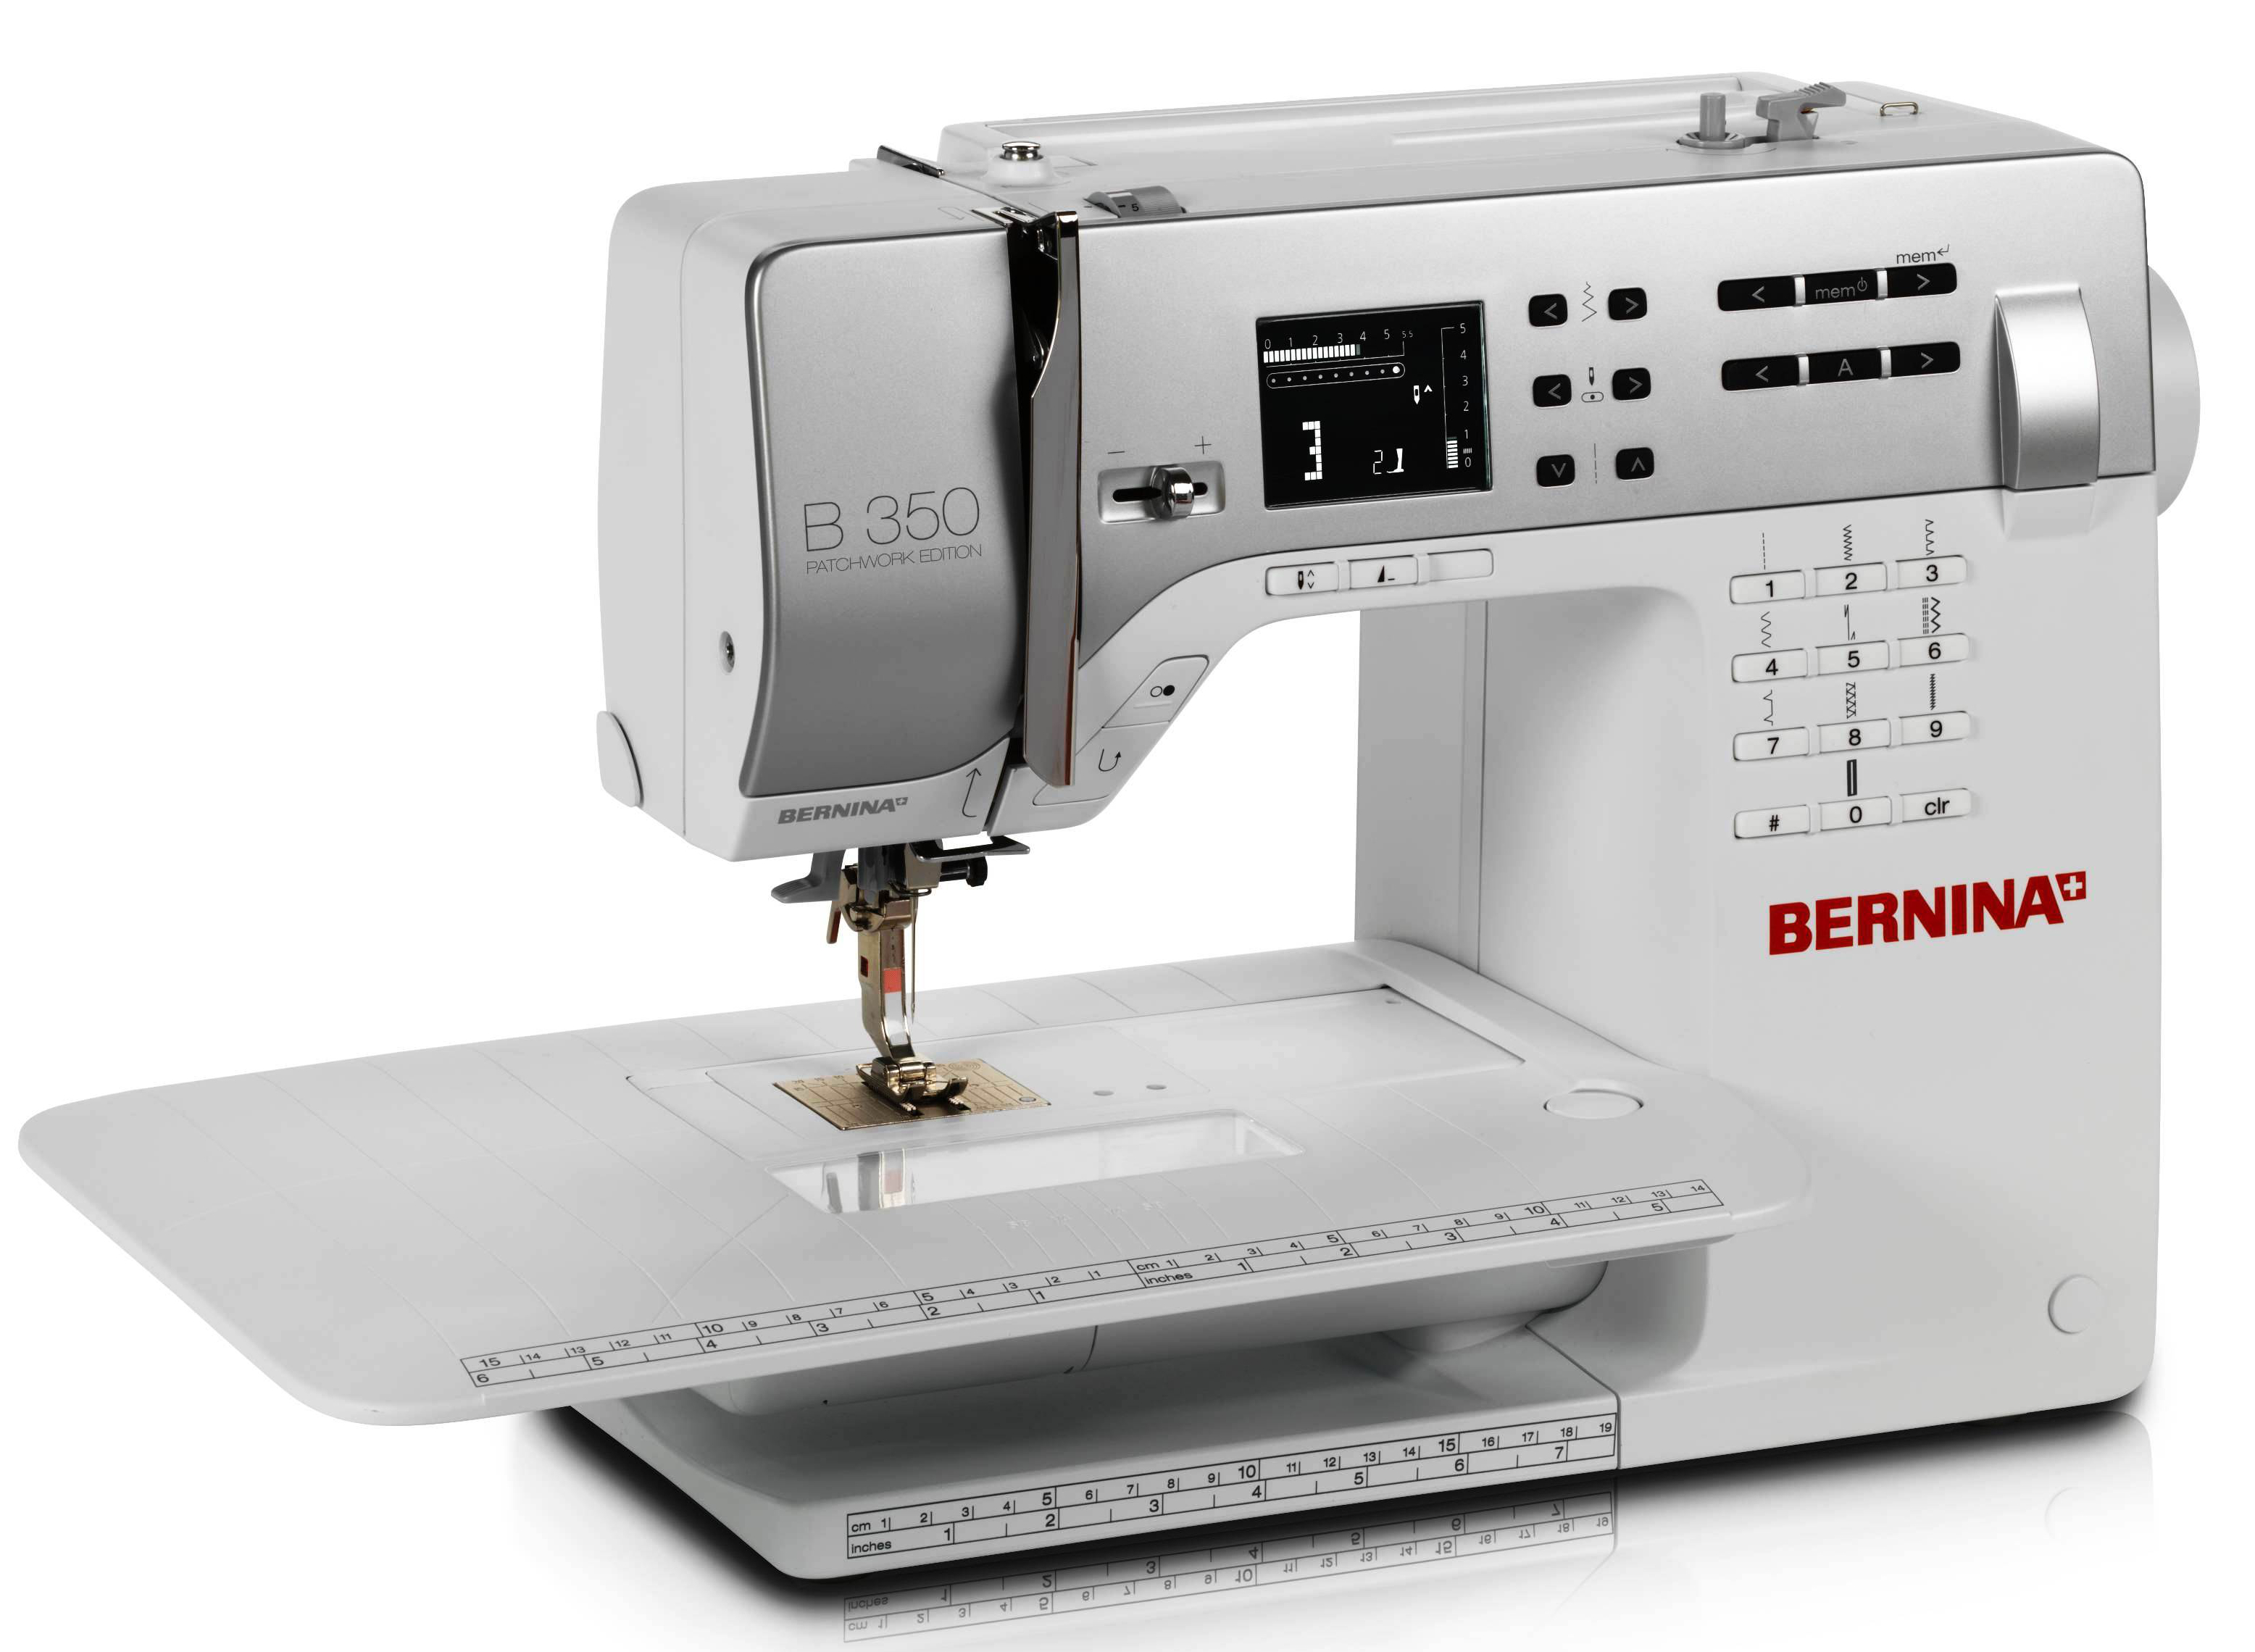 bernina n hmaschine 350 pe mit kniehebel und obertransportfu ebay. Black Bedroom Furniture Sets. Home Design Ideas